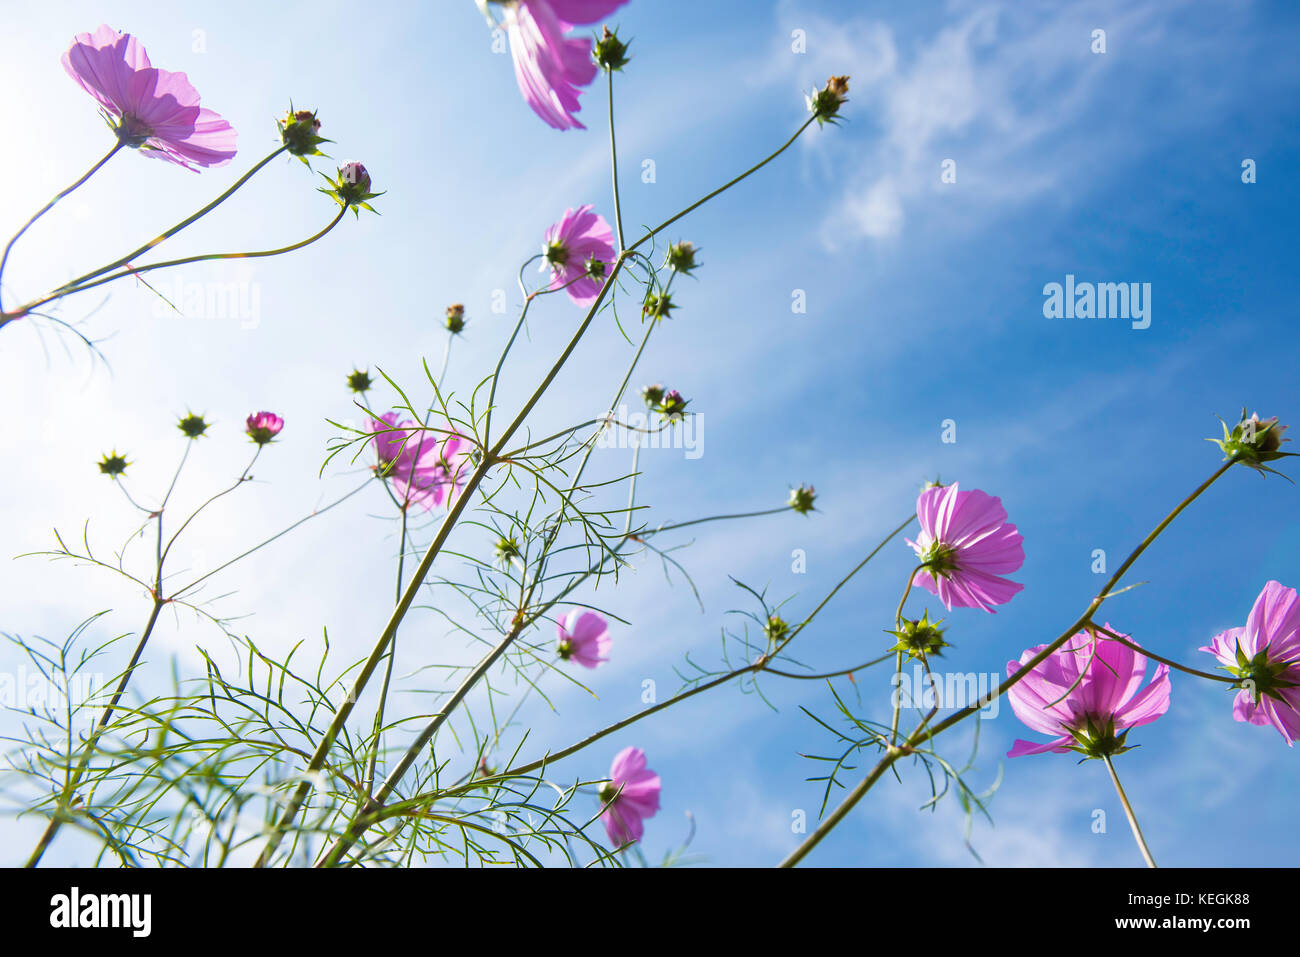 Autumn cosmos against a blue sky - Stock Image